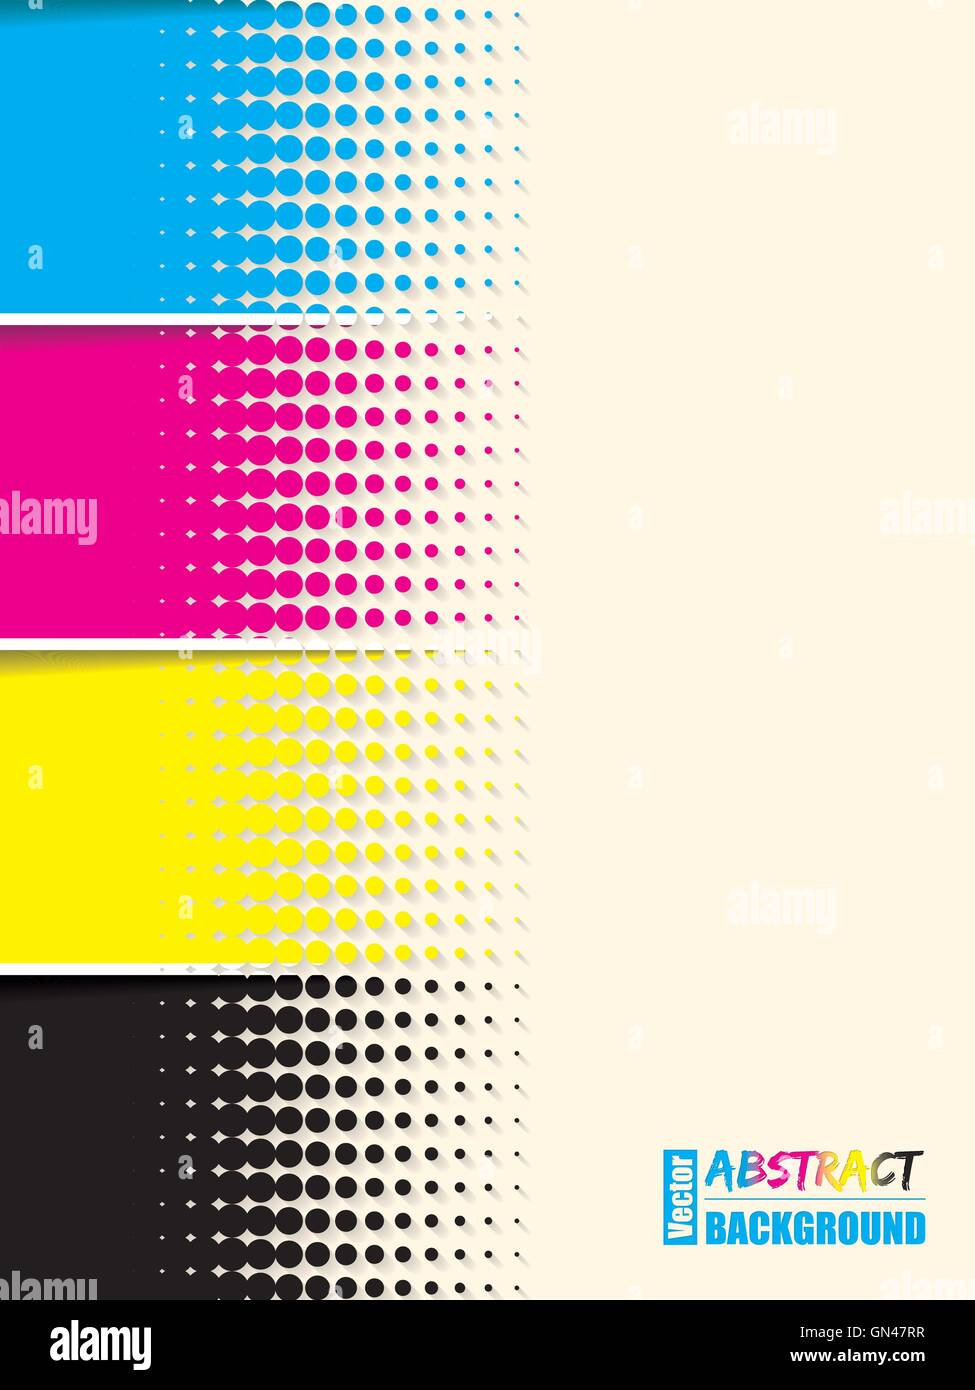 Abstract cmyk halftone background template - Stock Image